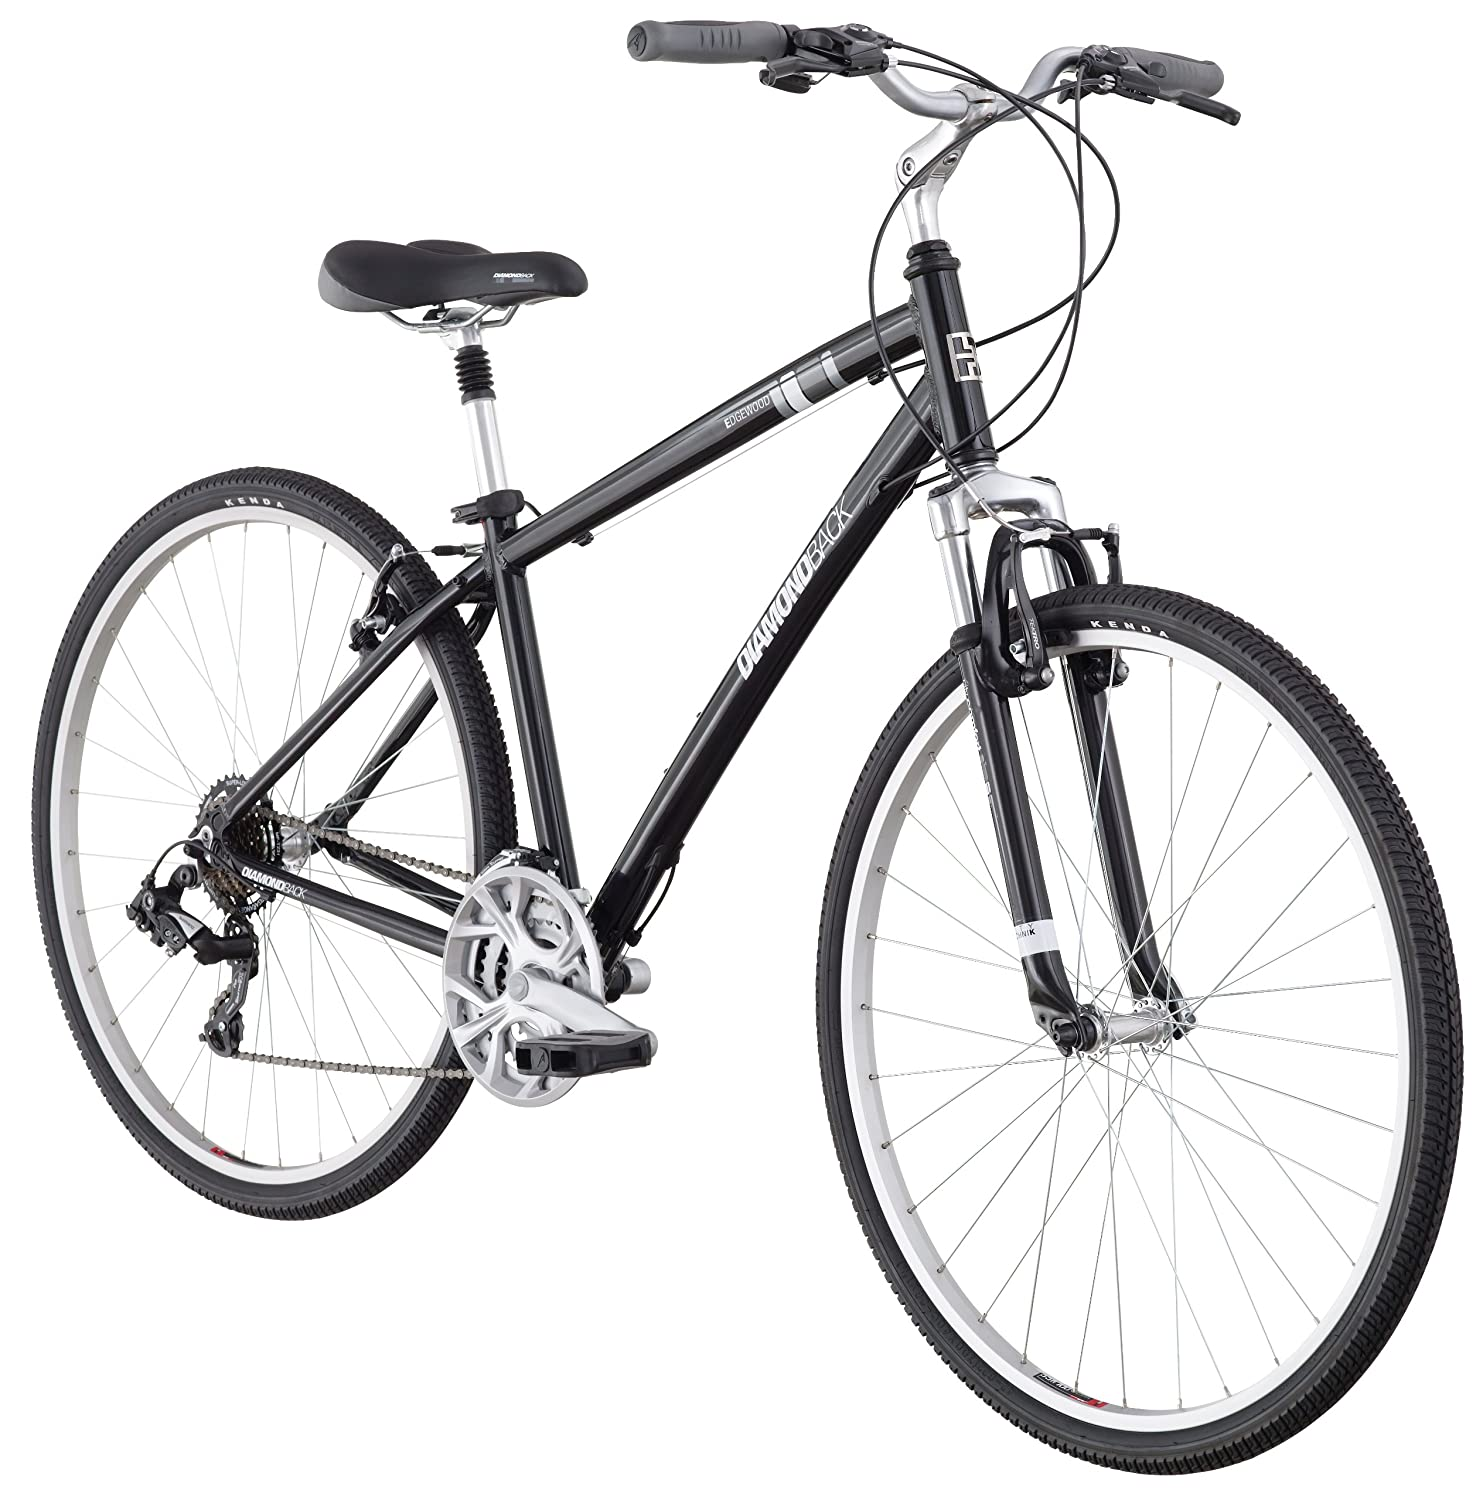 Bikes Hybrid Reviews Sport Hybrid Bike Picture